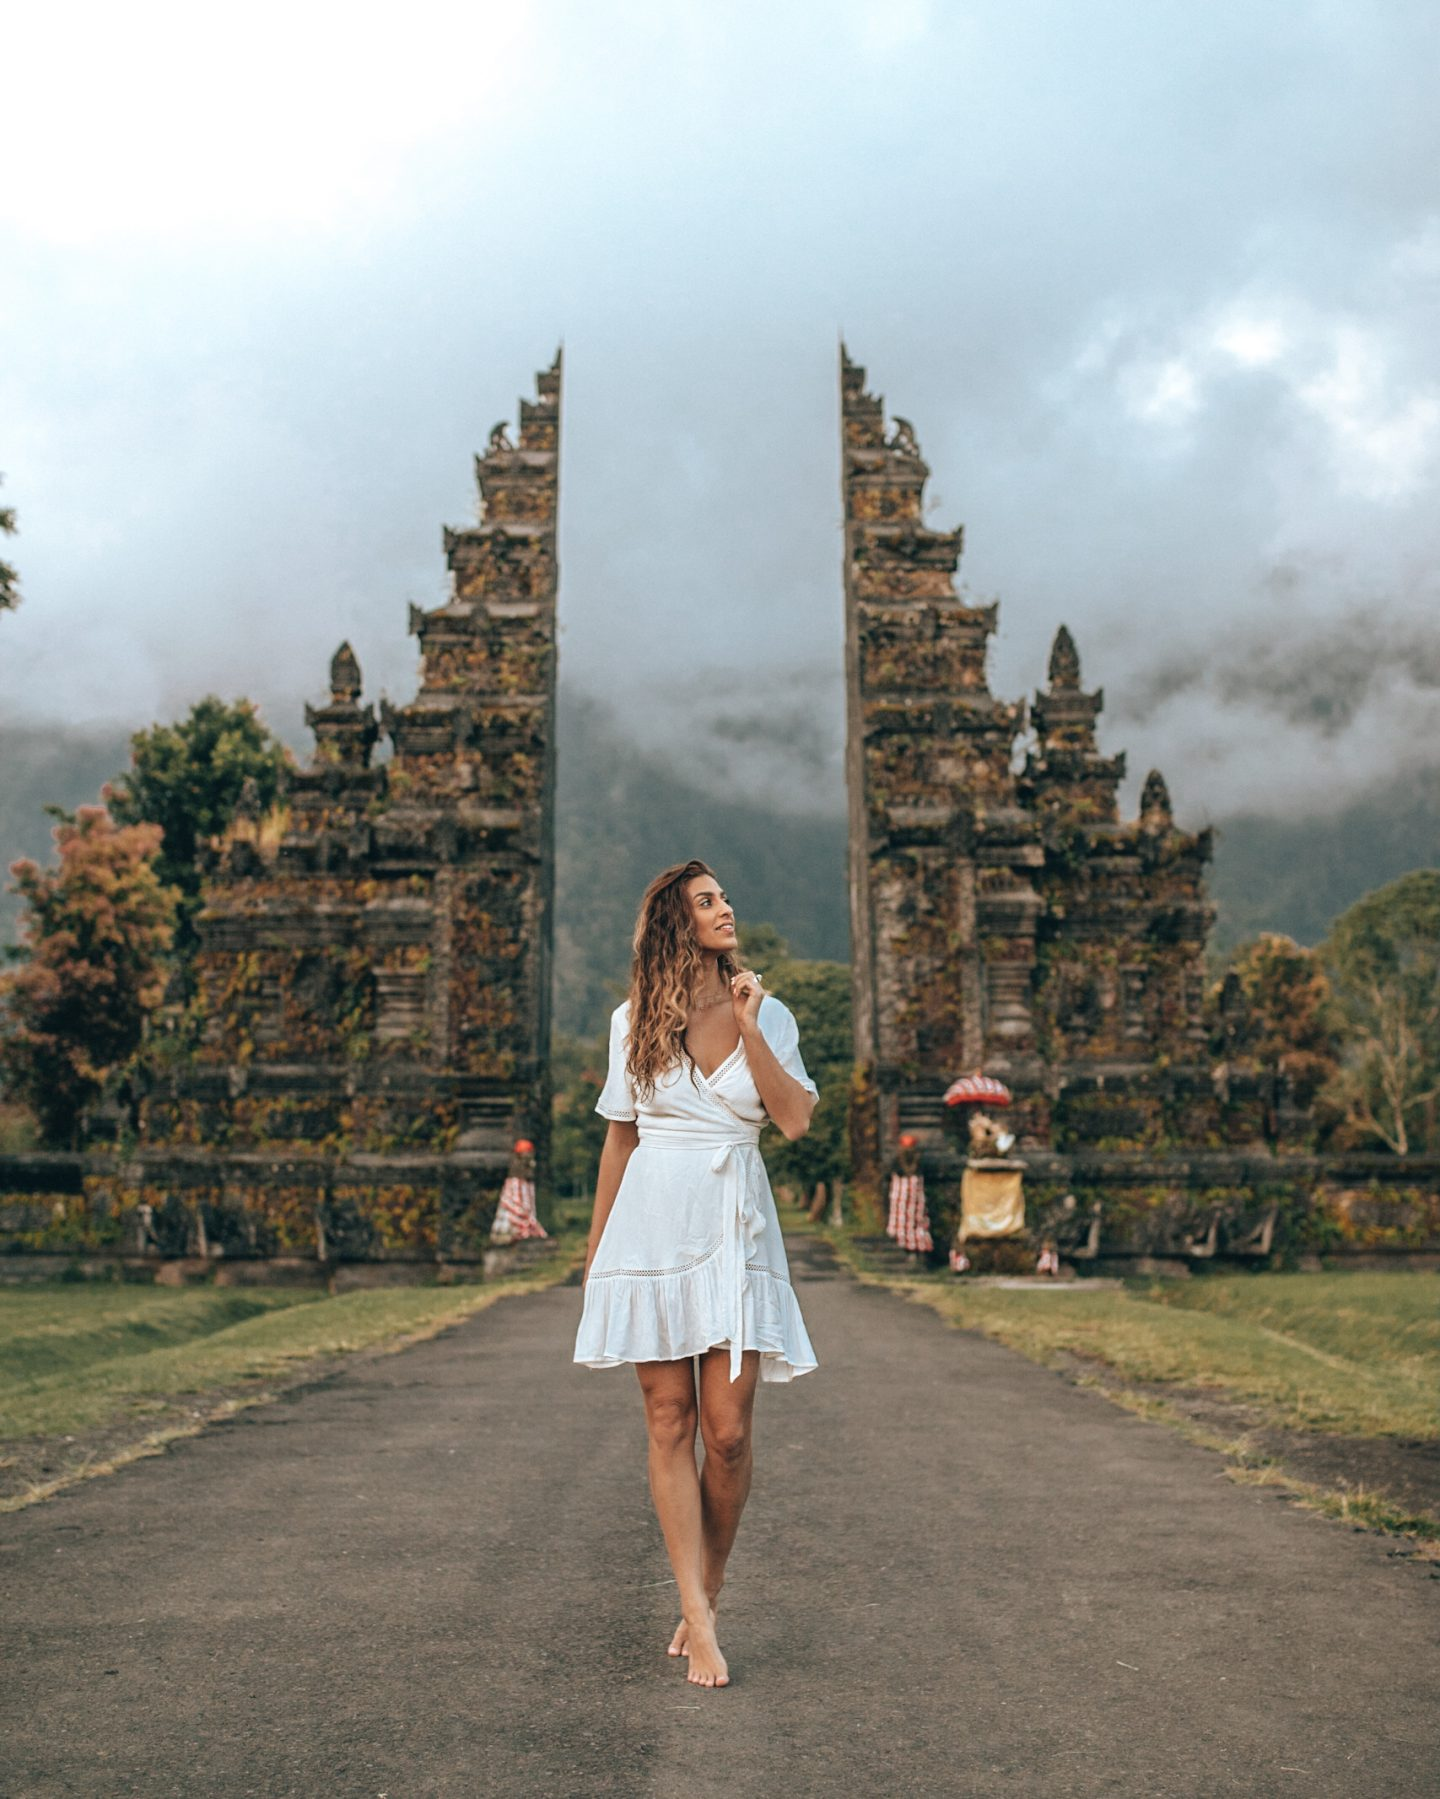 Lisa Homsy at the gates in Bali